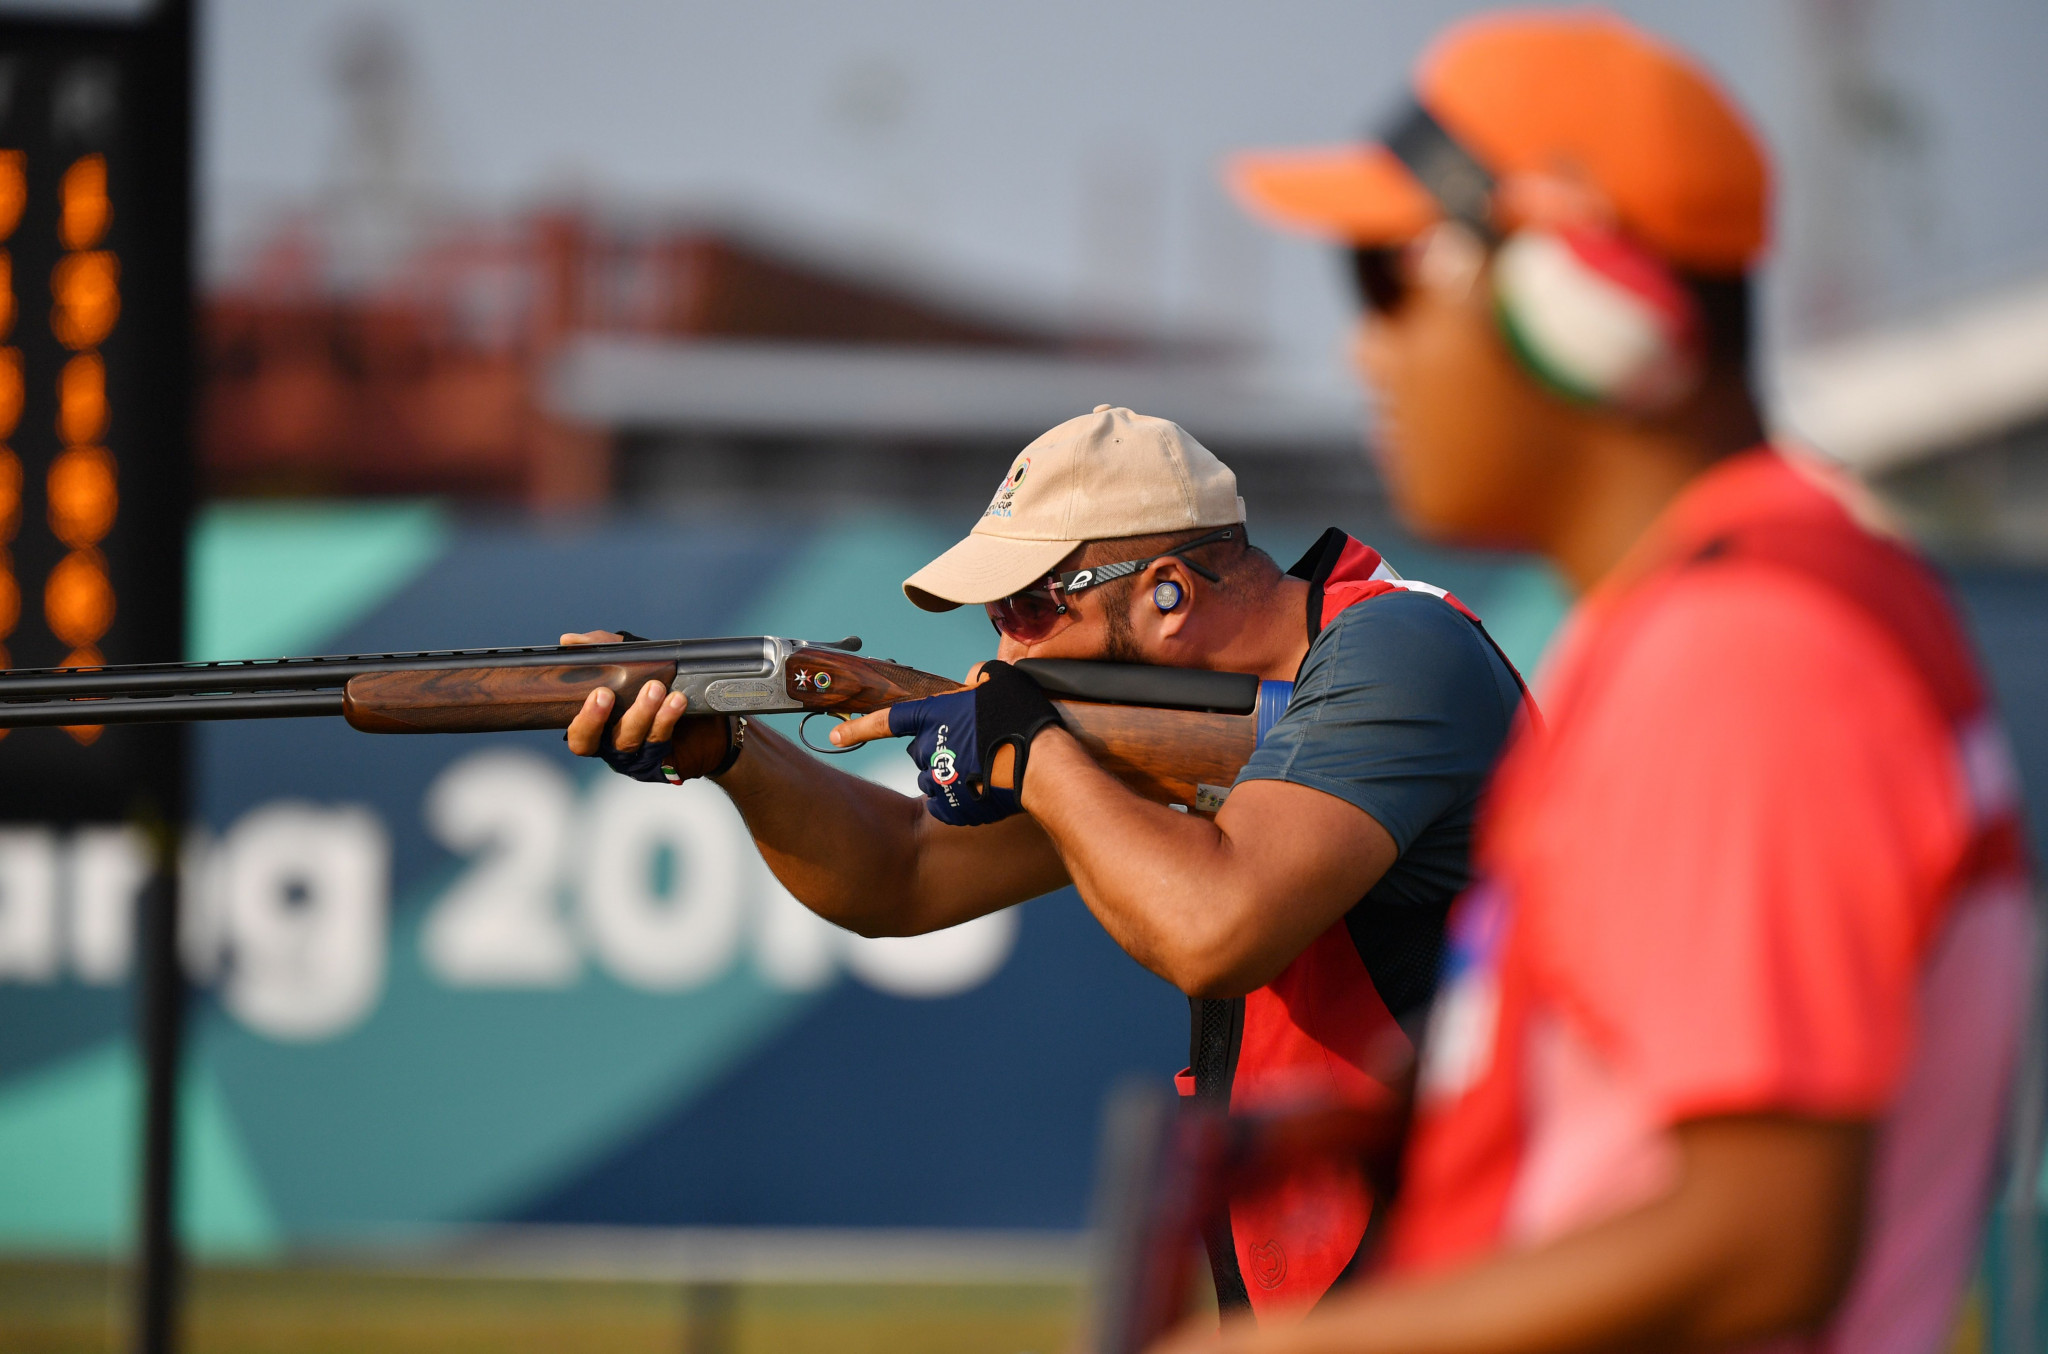 A new event format for mixed team competitions will be trialled at the ISSF Rifle and Pistol World Cup in Beijing ©Getty Images